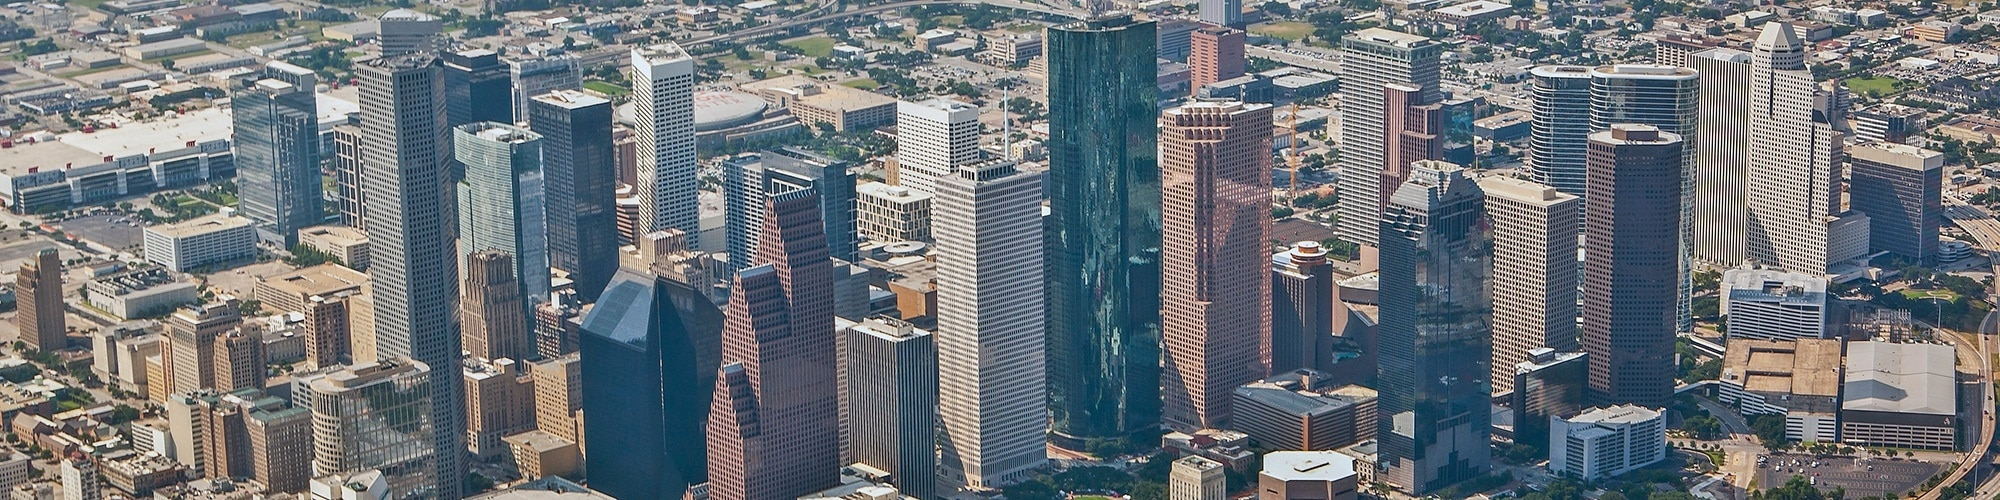 banner-bank-of-america-houston-skyline.jpg